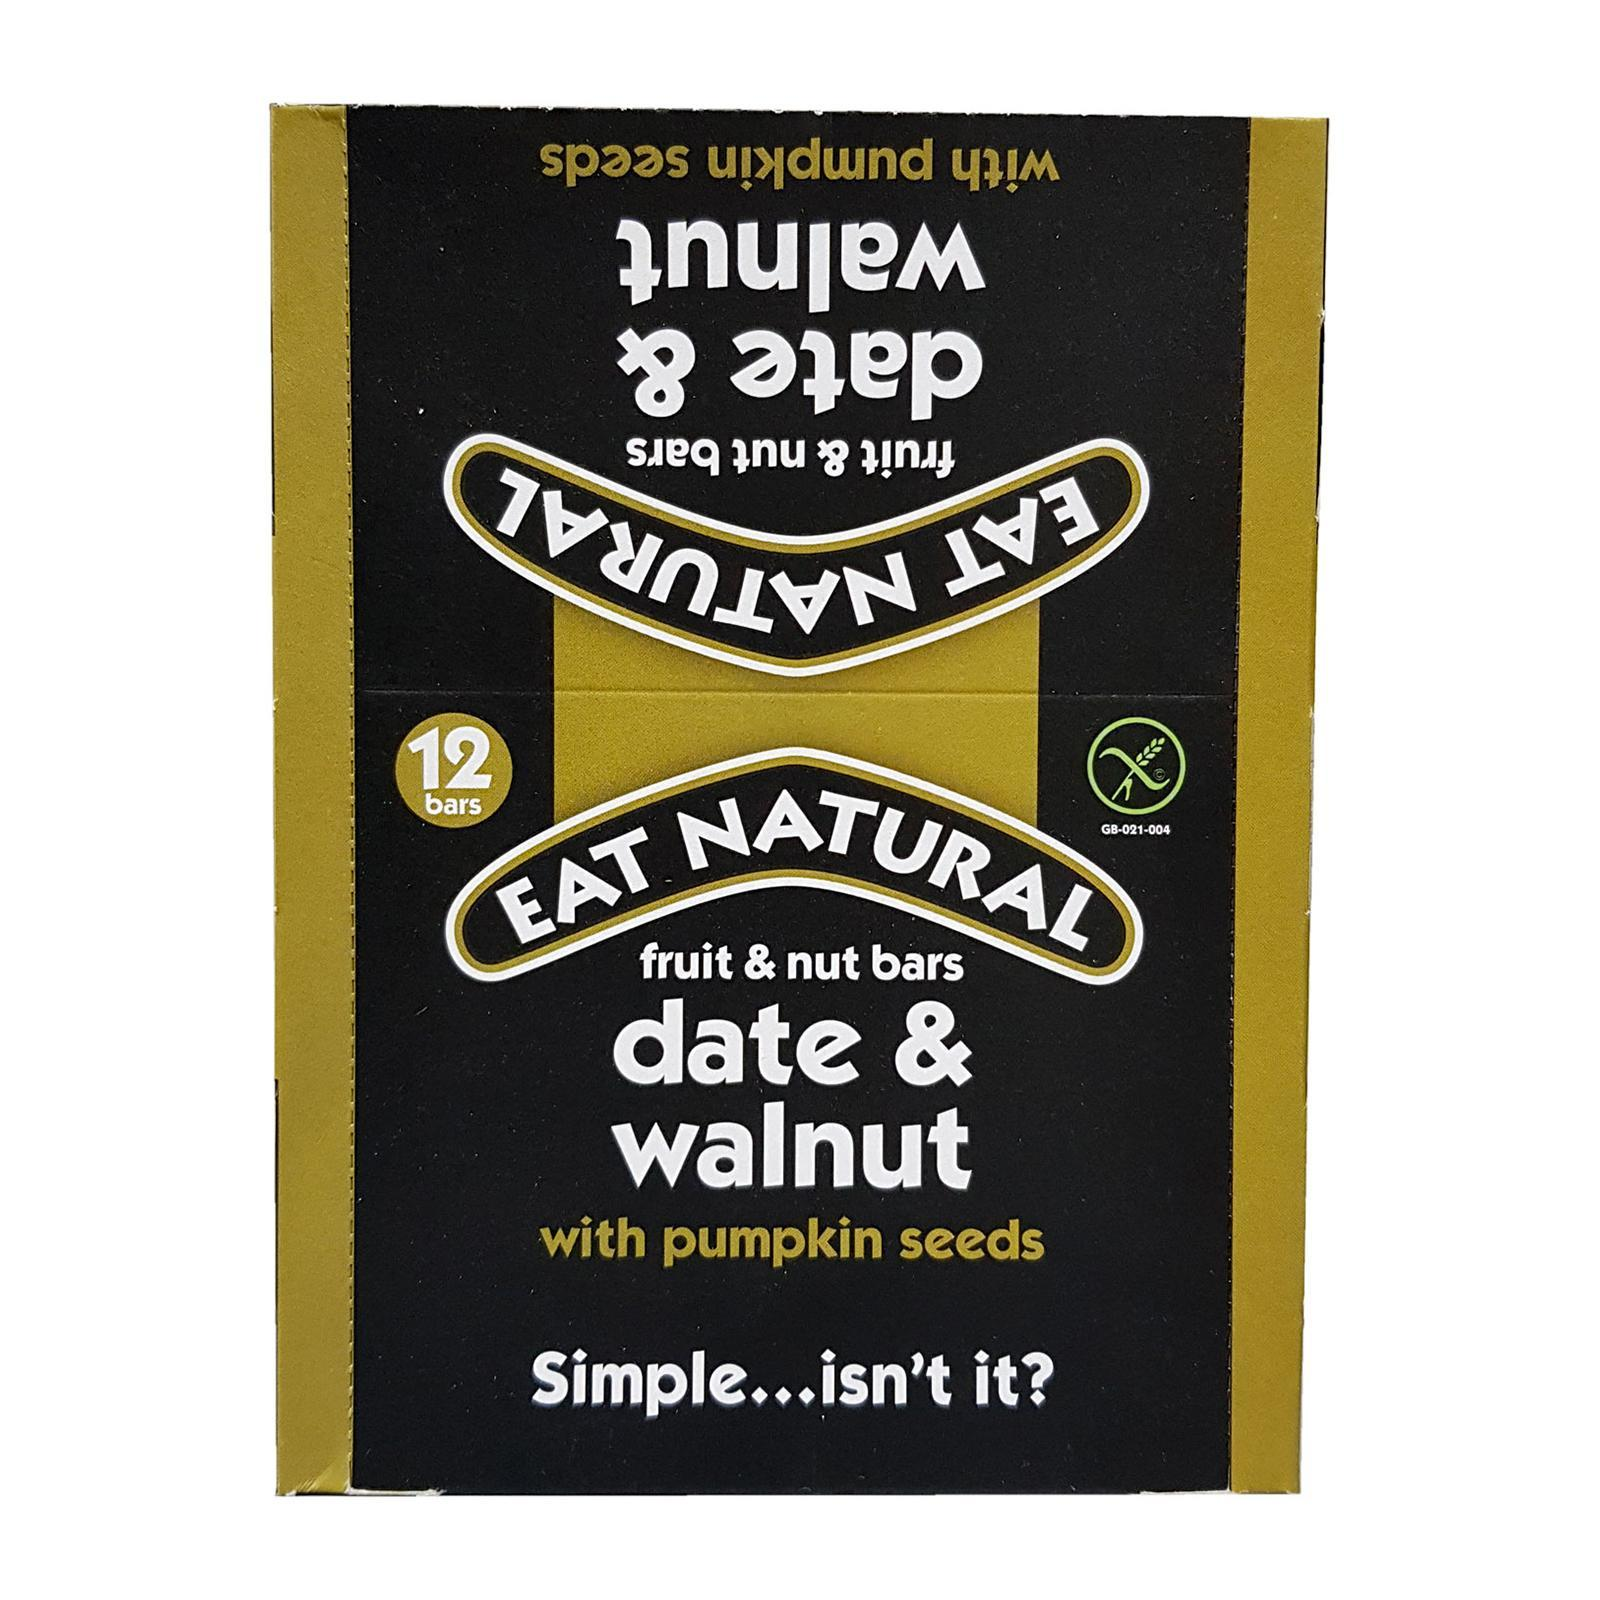 Eat Natural Dates Walnut And Pumpkin Seed Bar - By Wholesome Harvest